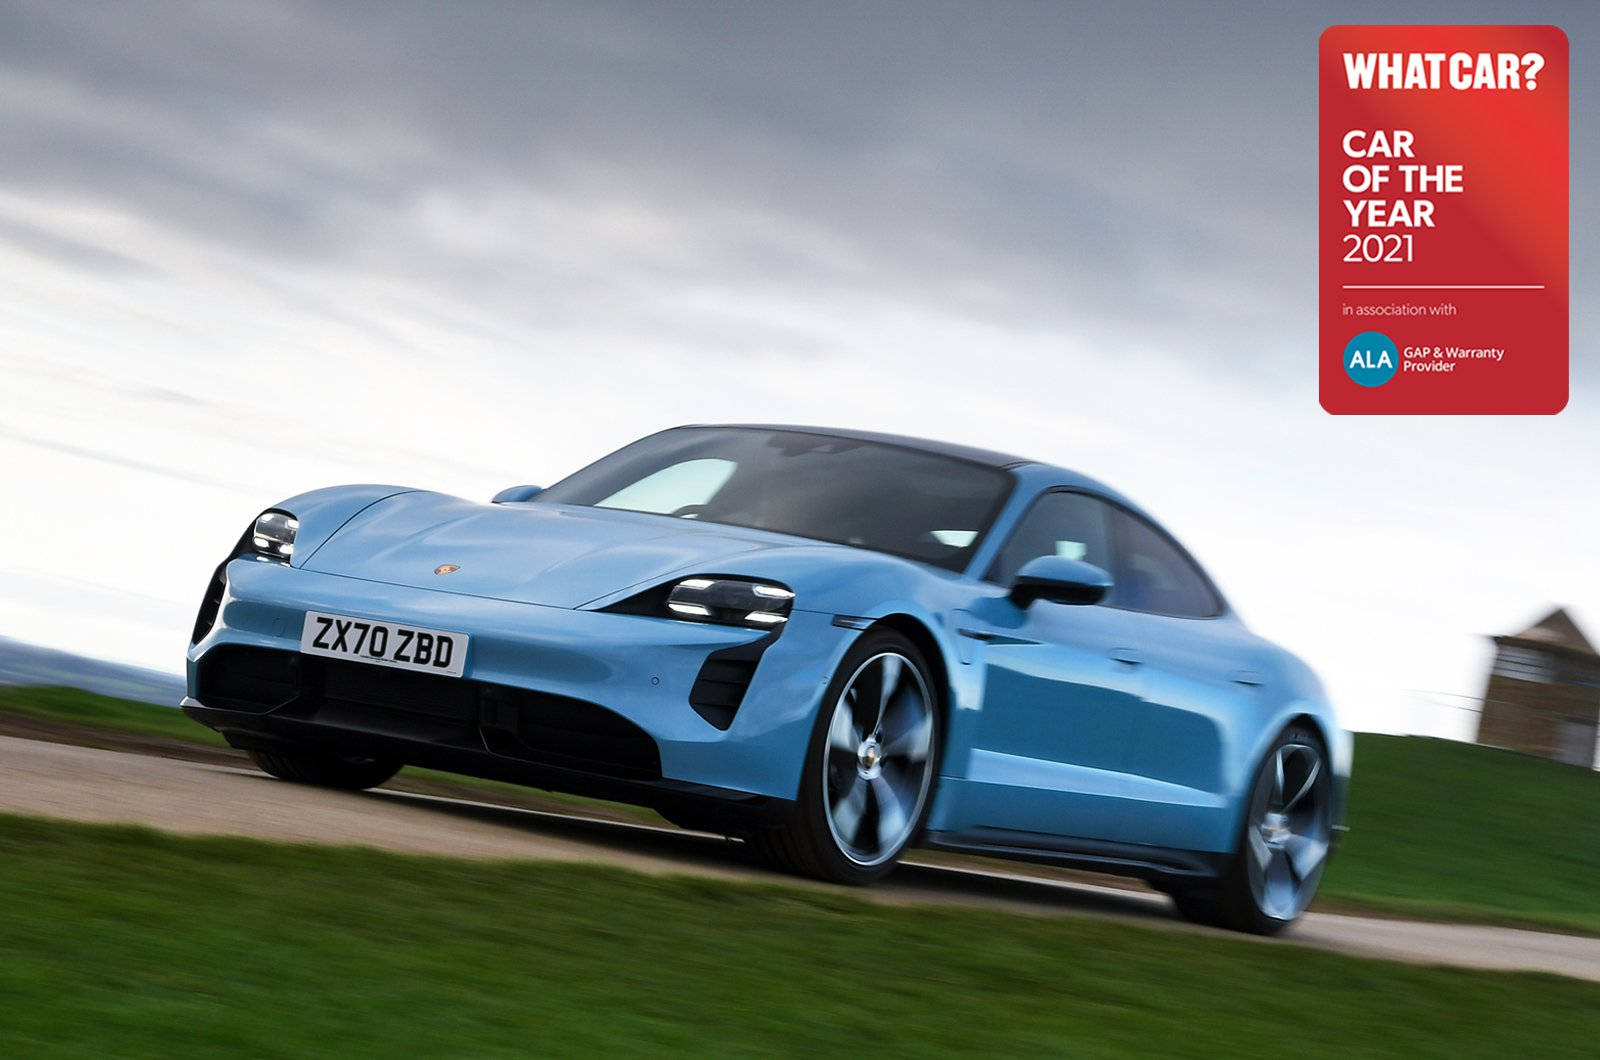 Performance Car of the Year 2021 - Porsche Taycan